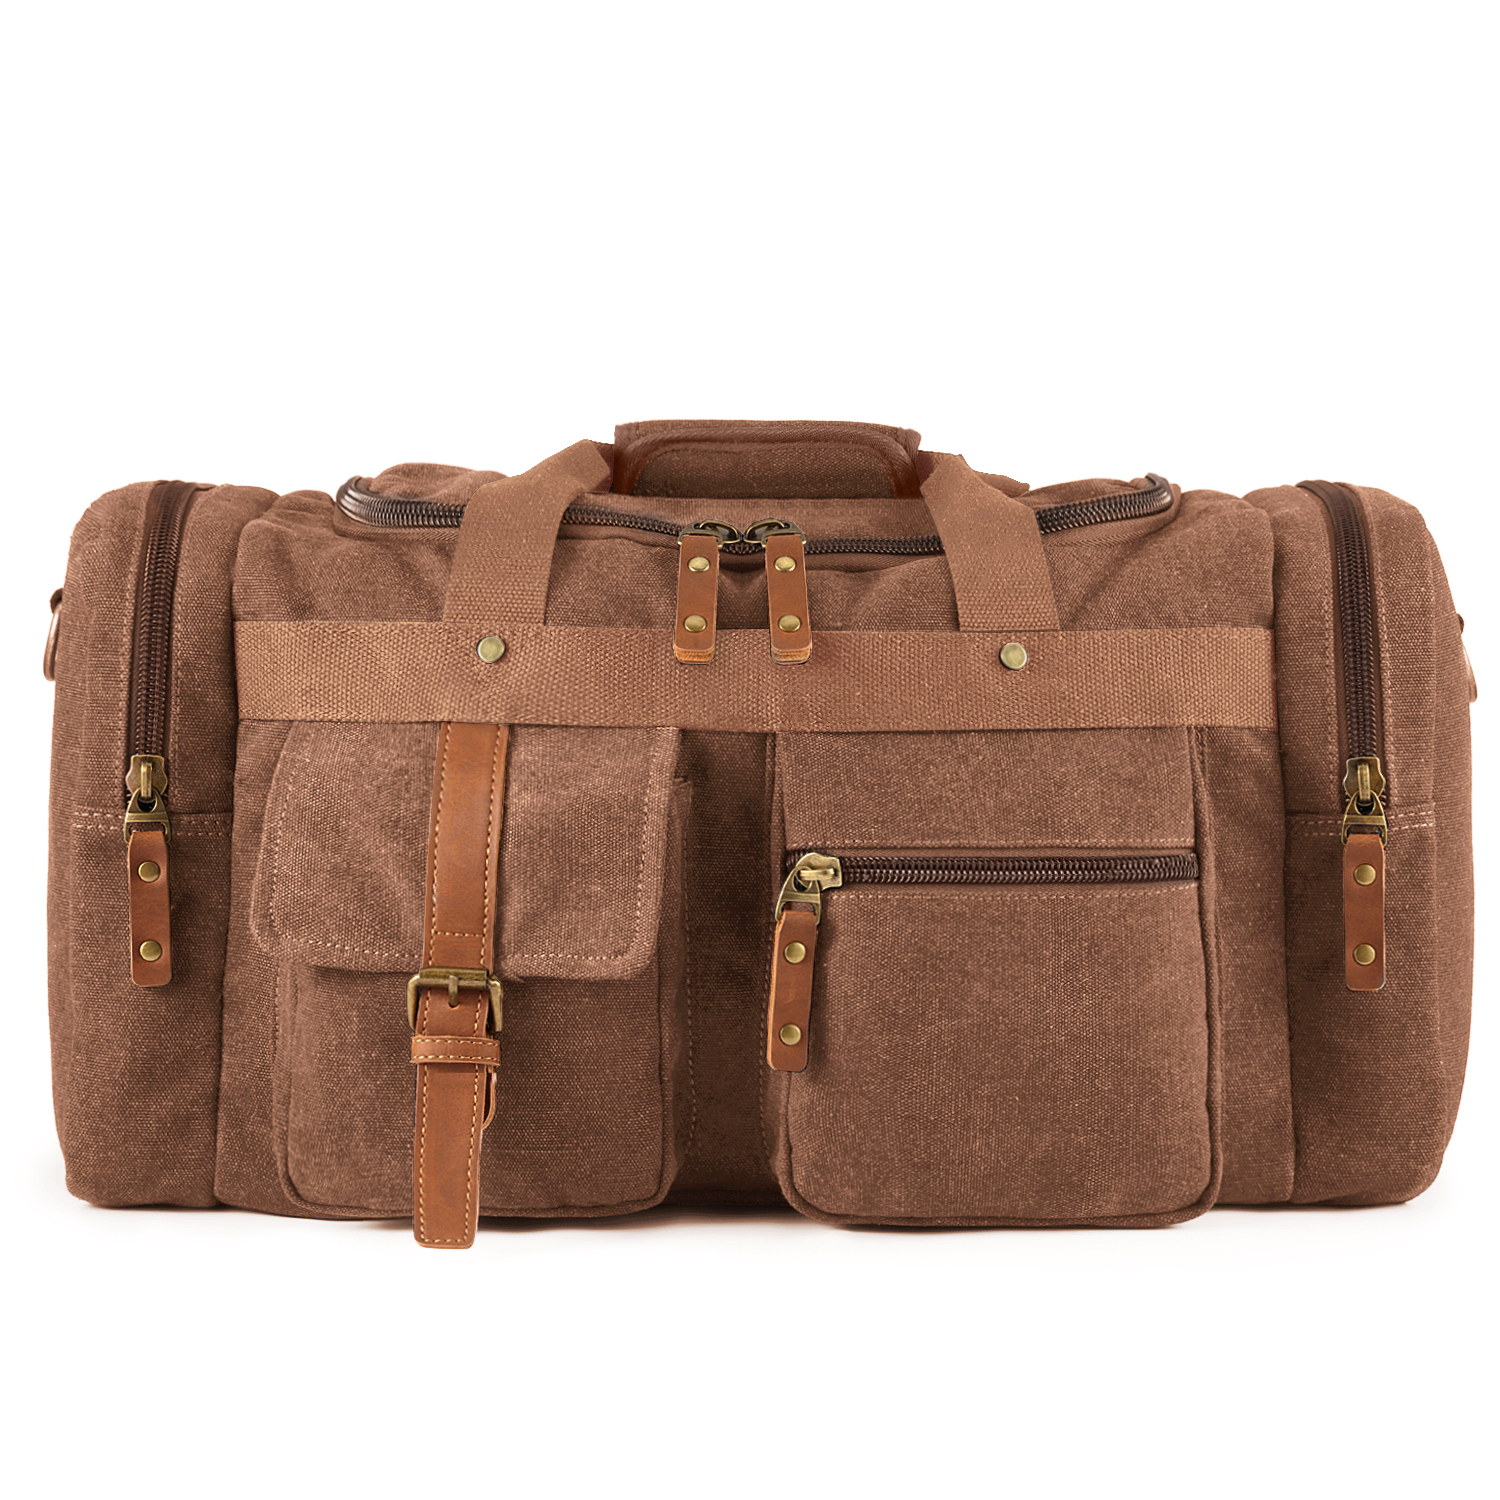 Plambag Oversized Canvas Duffel Bag Travel Weekend Tote Shoulder Bag